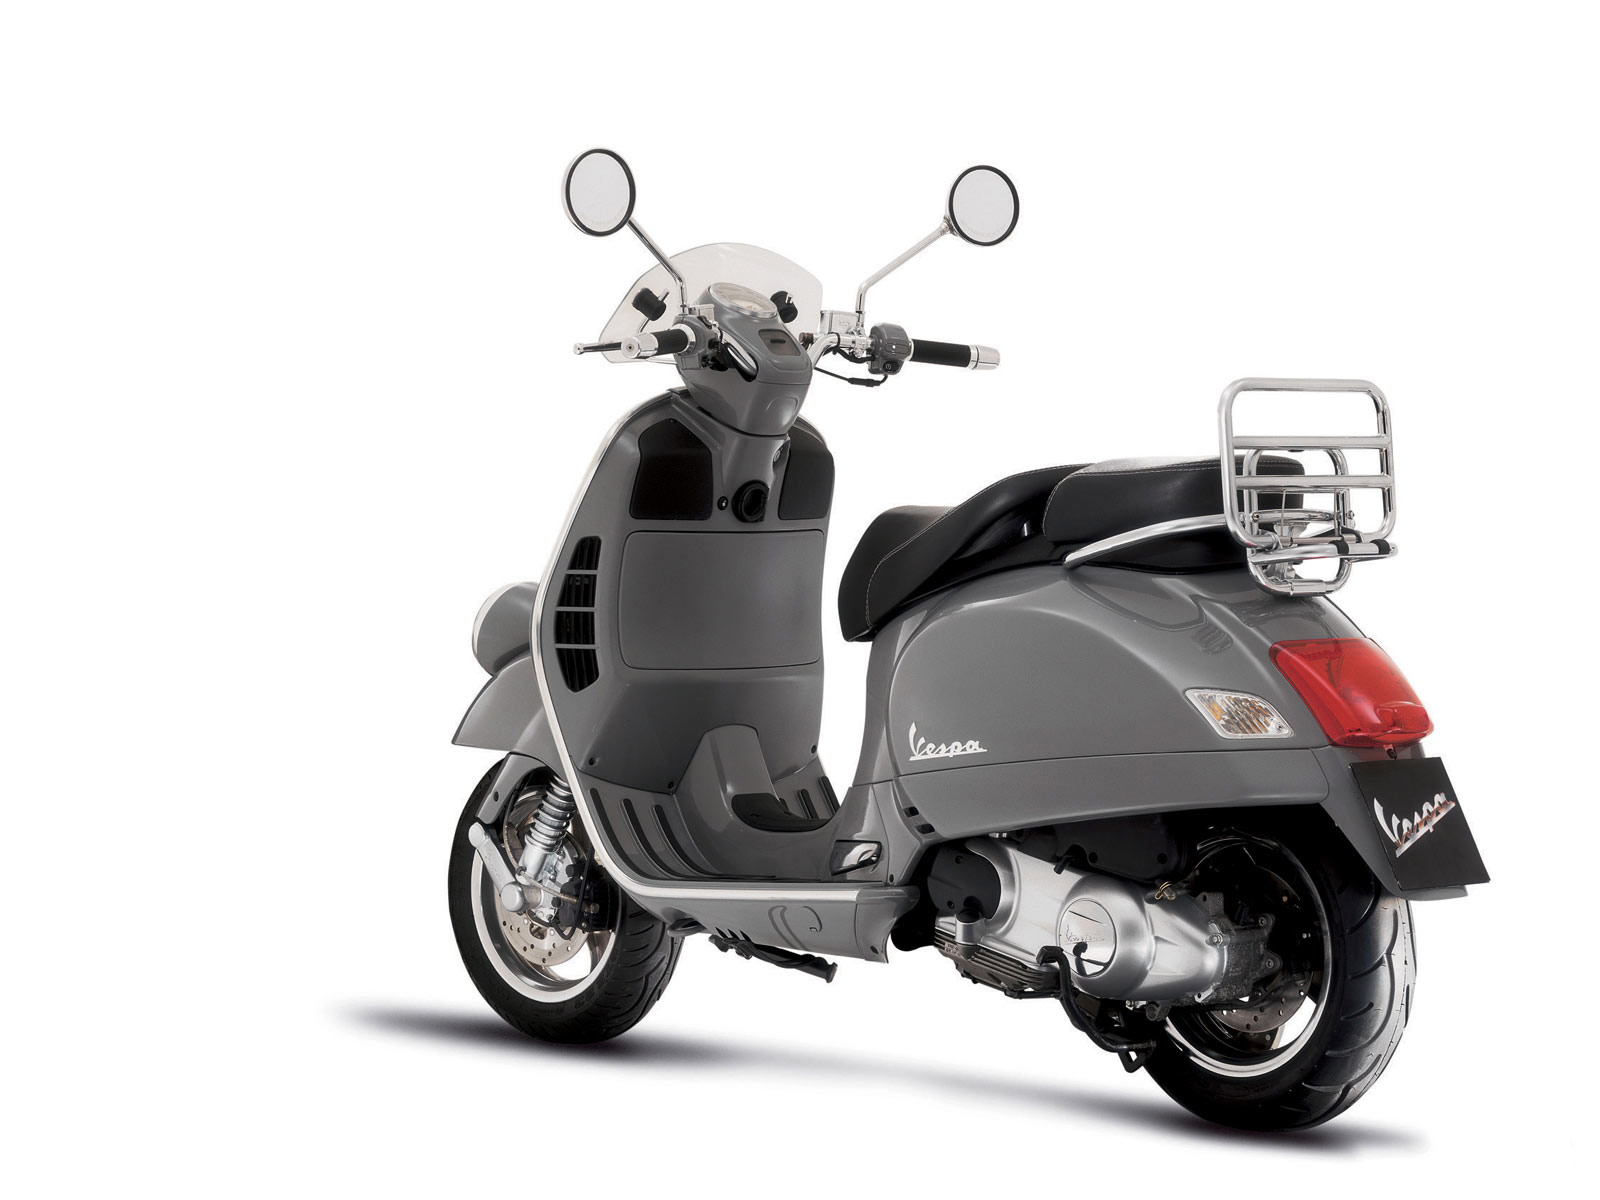 vespa scooters bing images. Black Bedroom Furniture Sets. Home Design Ideas